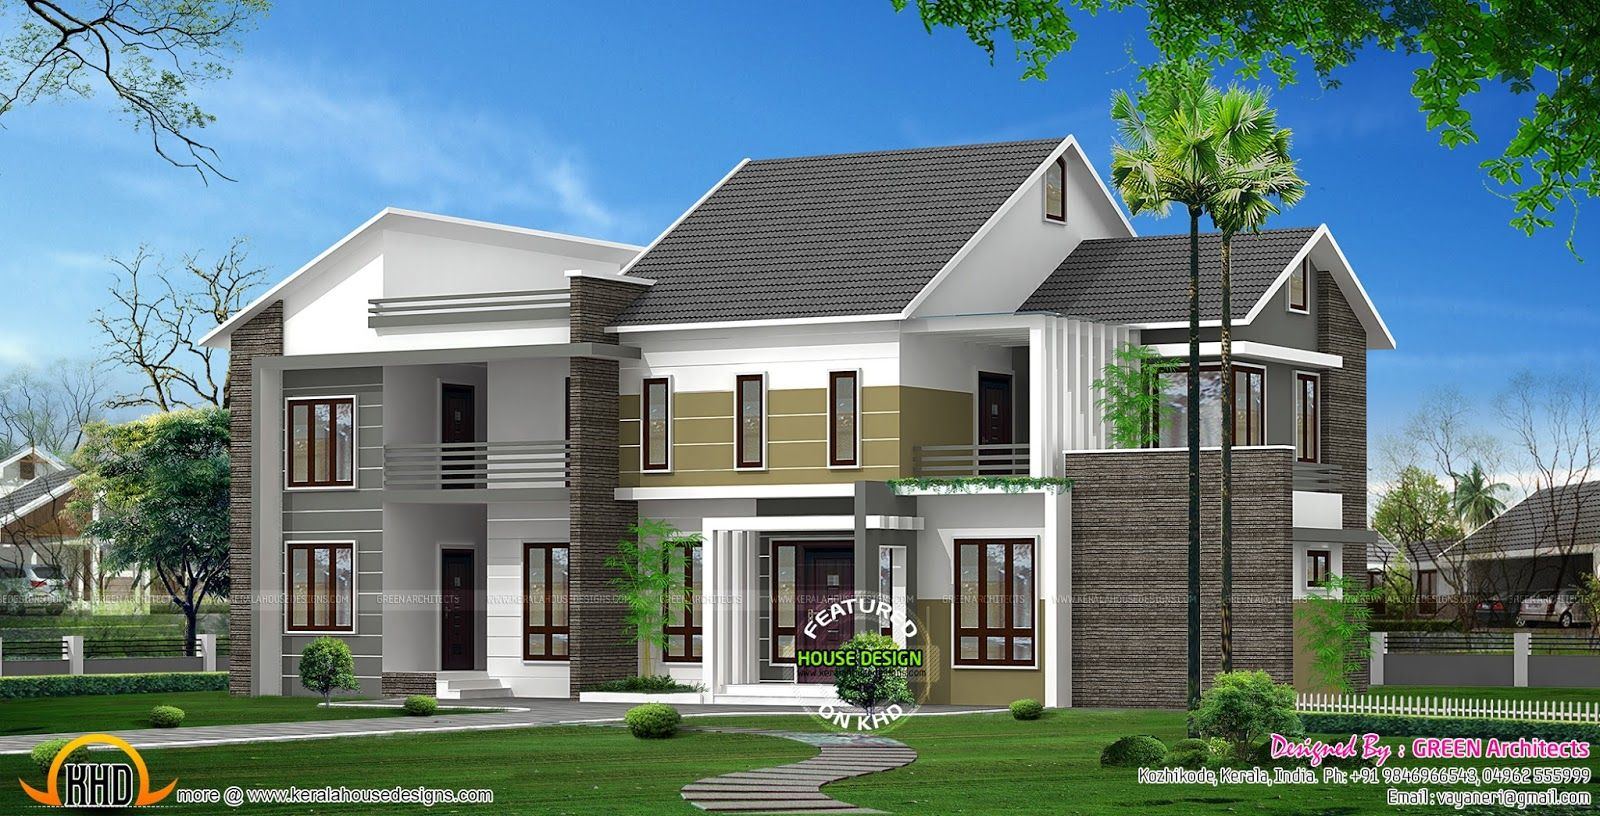 Floor Plans With 2000 Square Feet House Plans 2300 Sq Ft On 2000 Square Foot House Plans With Bonus Porch House Plans House With Porch Porch Design